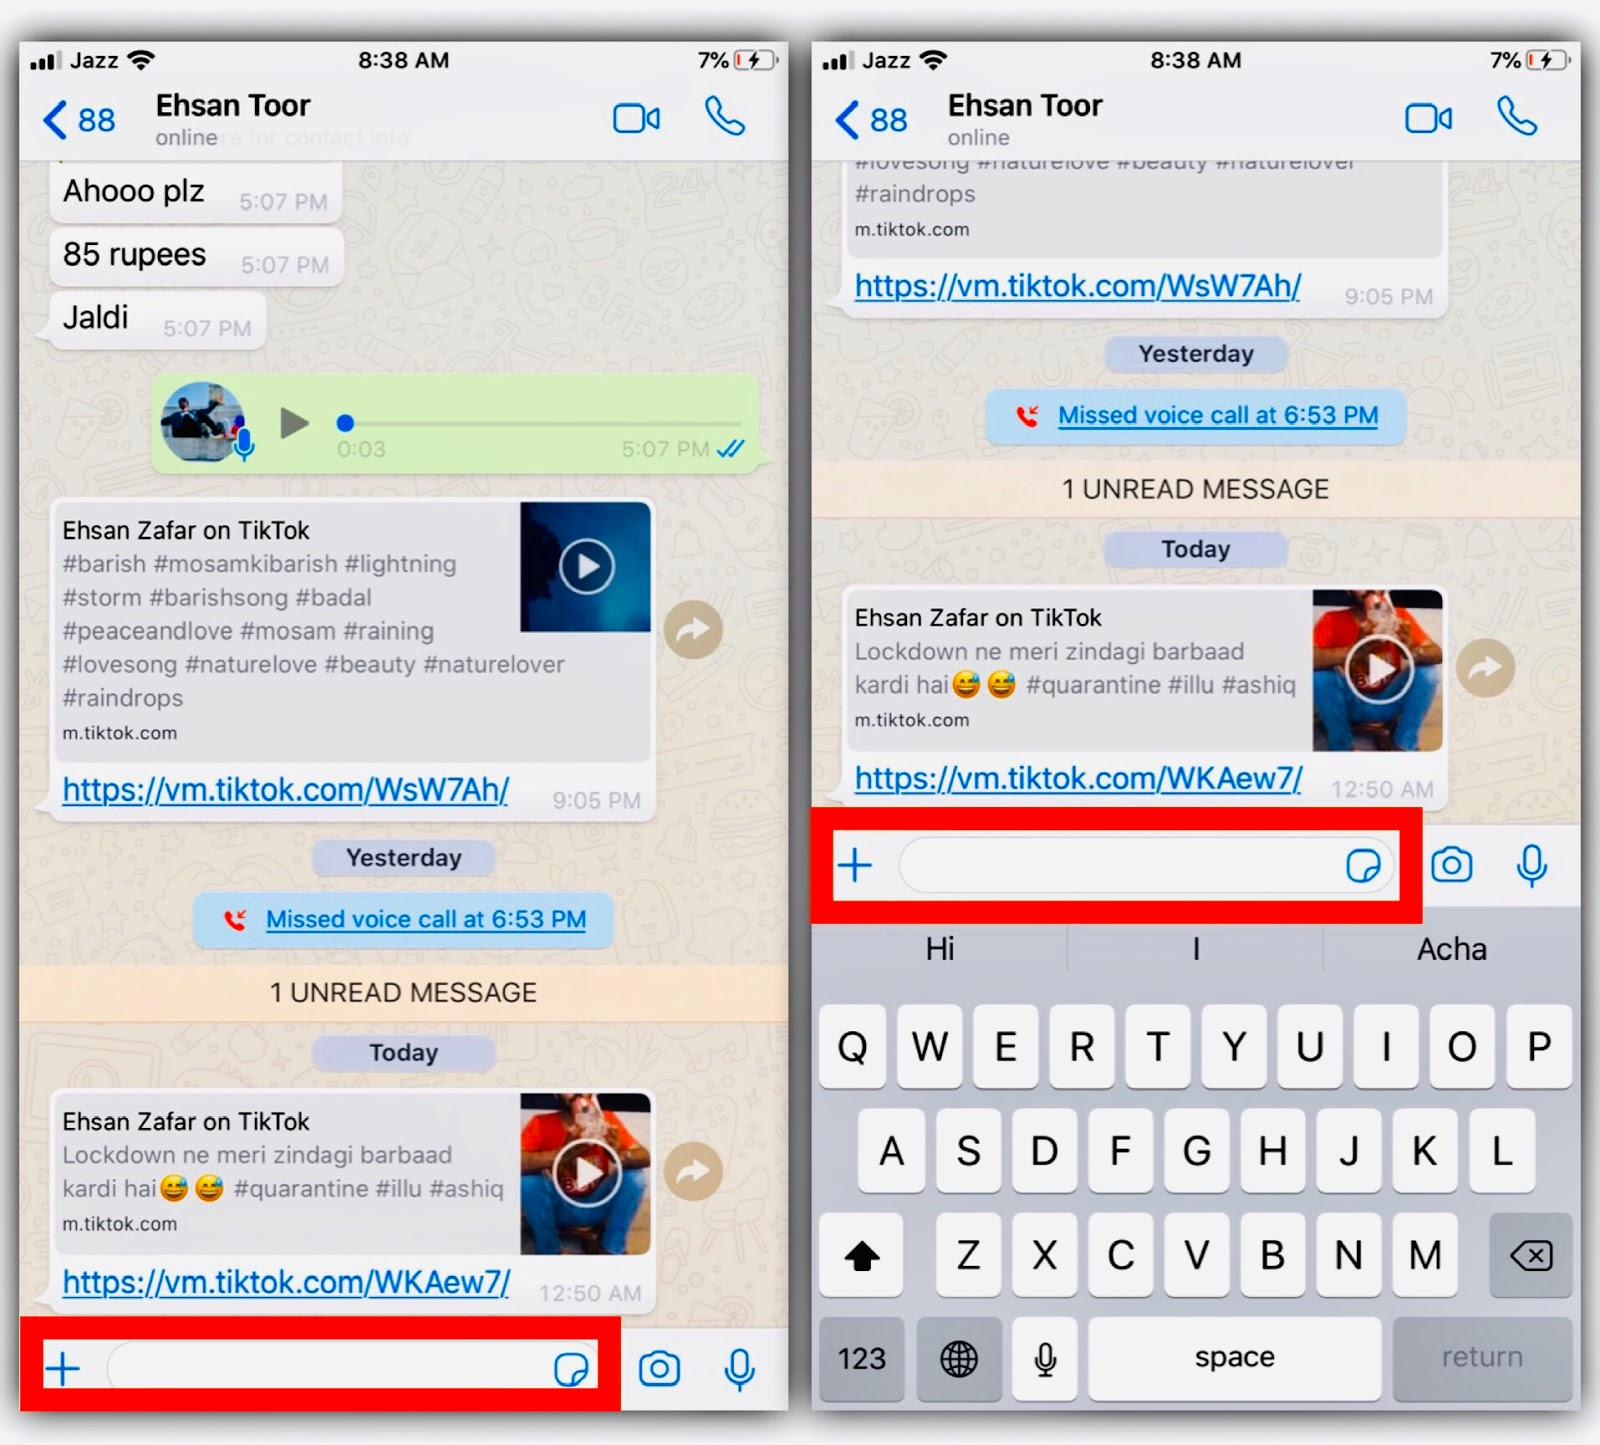 How To Send Blank Message On Whatsapp